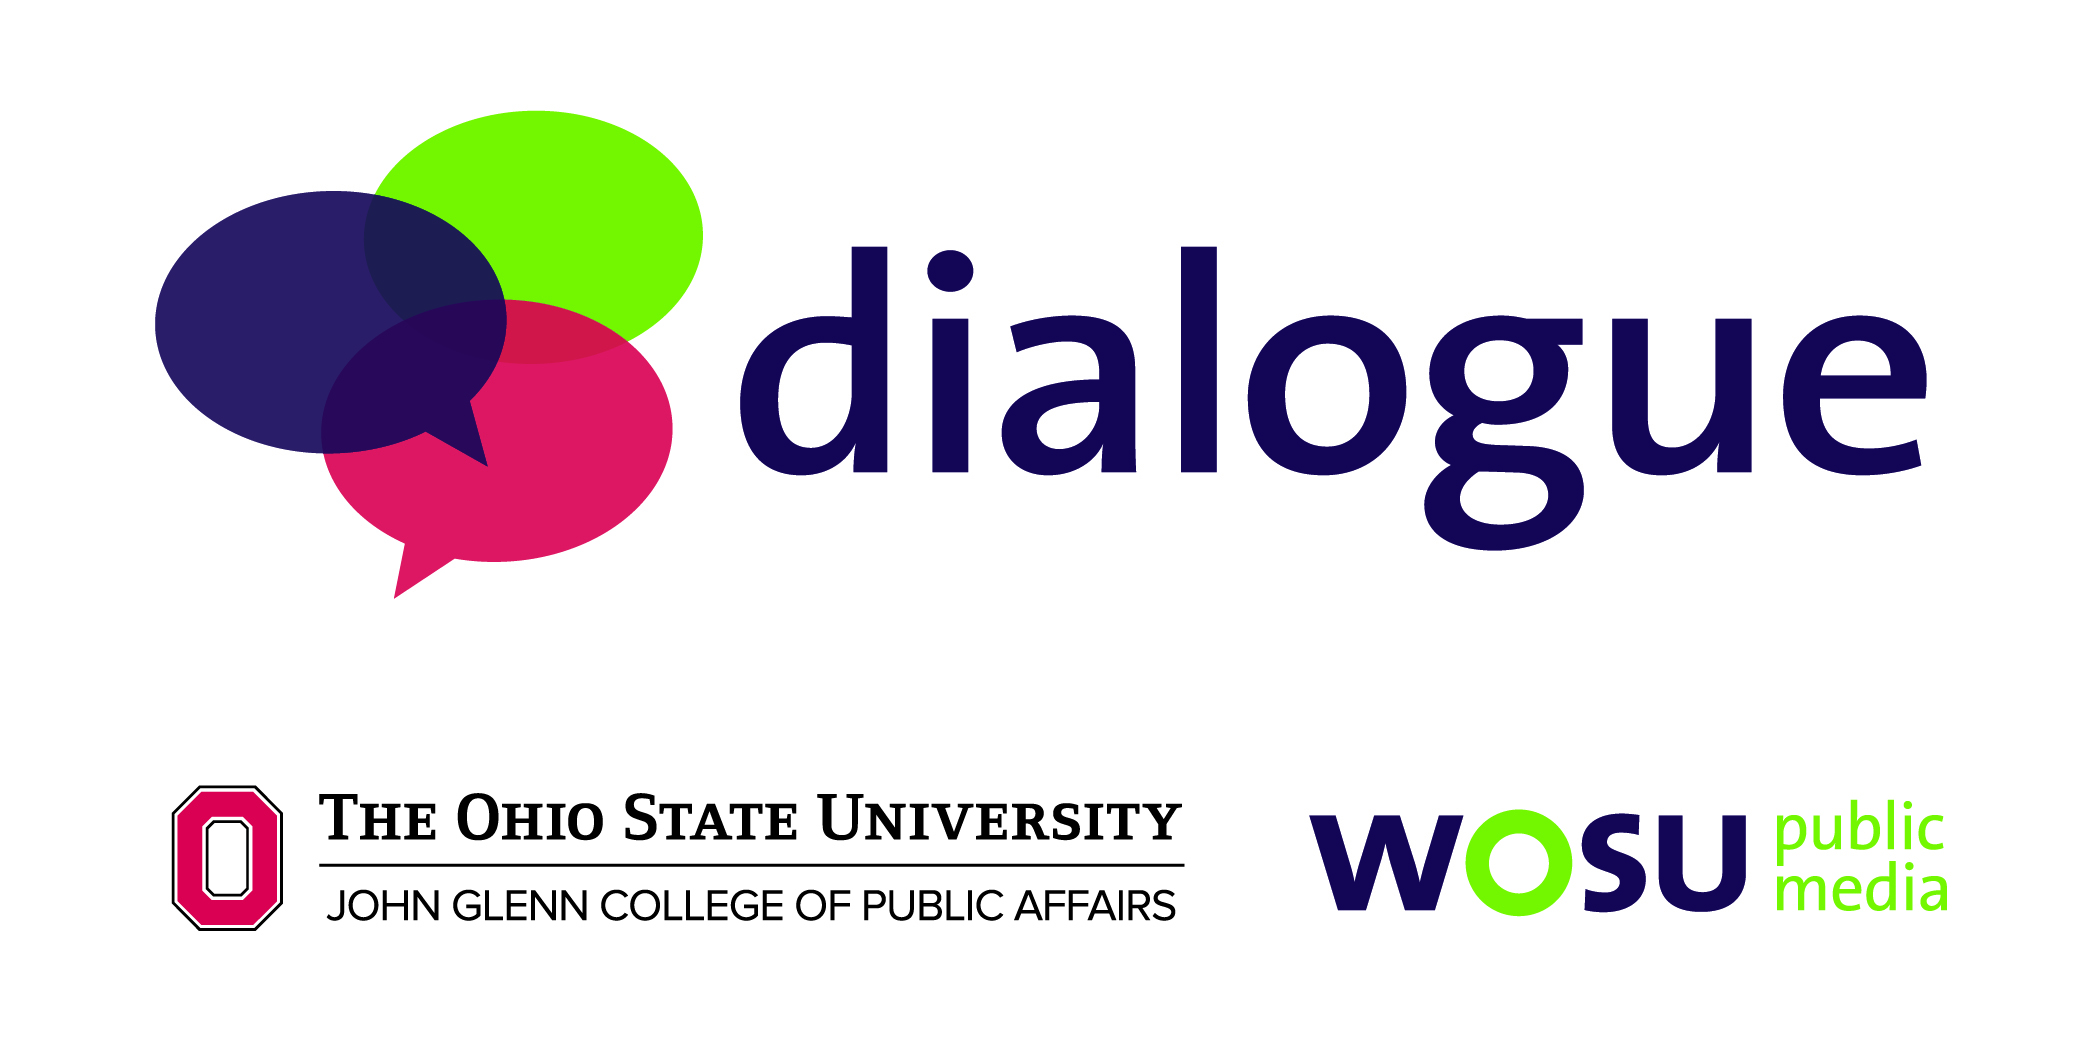 Dialogue: The New Age of Entrepreneurship